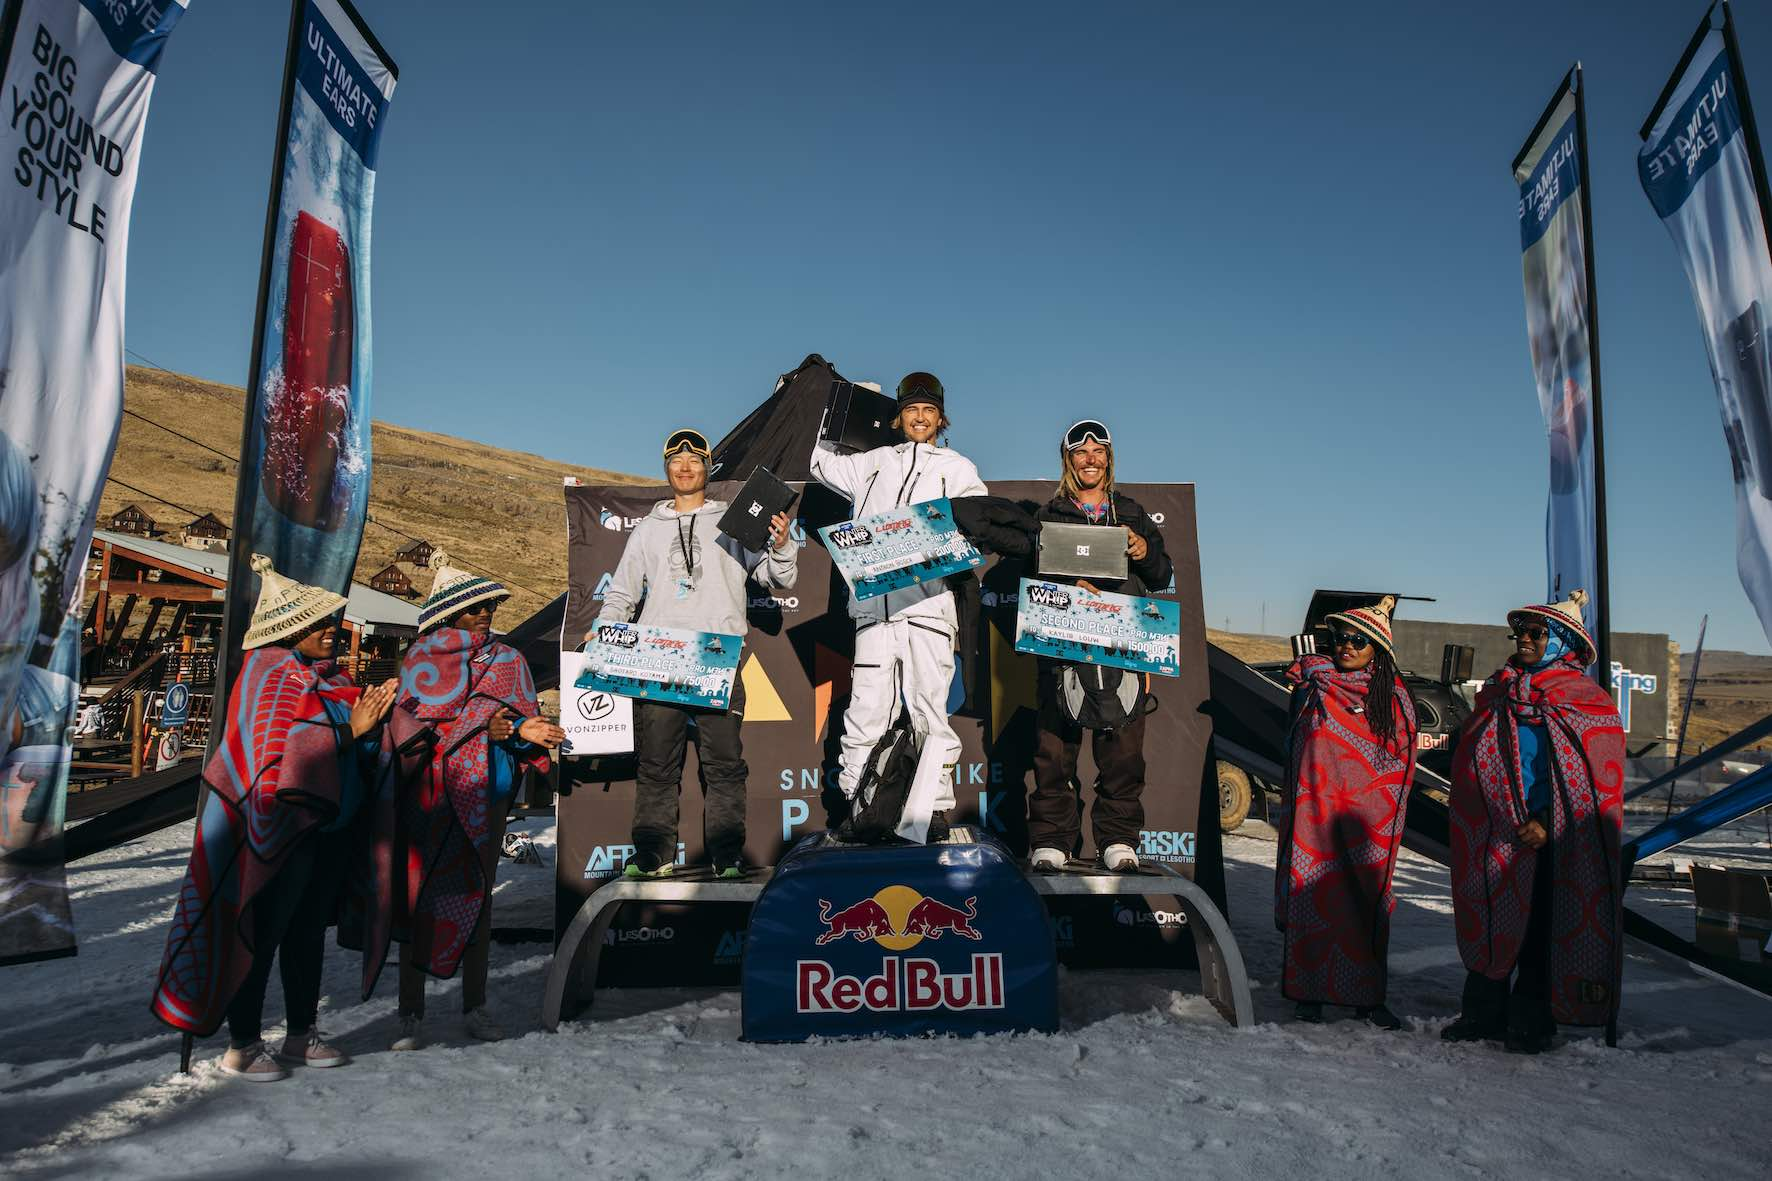 Pro Men podium at the 2019 Ultimate Ears Winter Whip Snowboard and Ski Festival